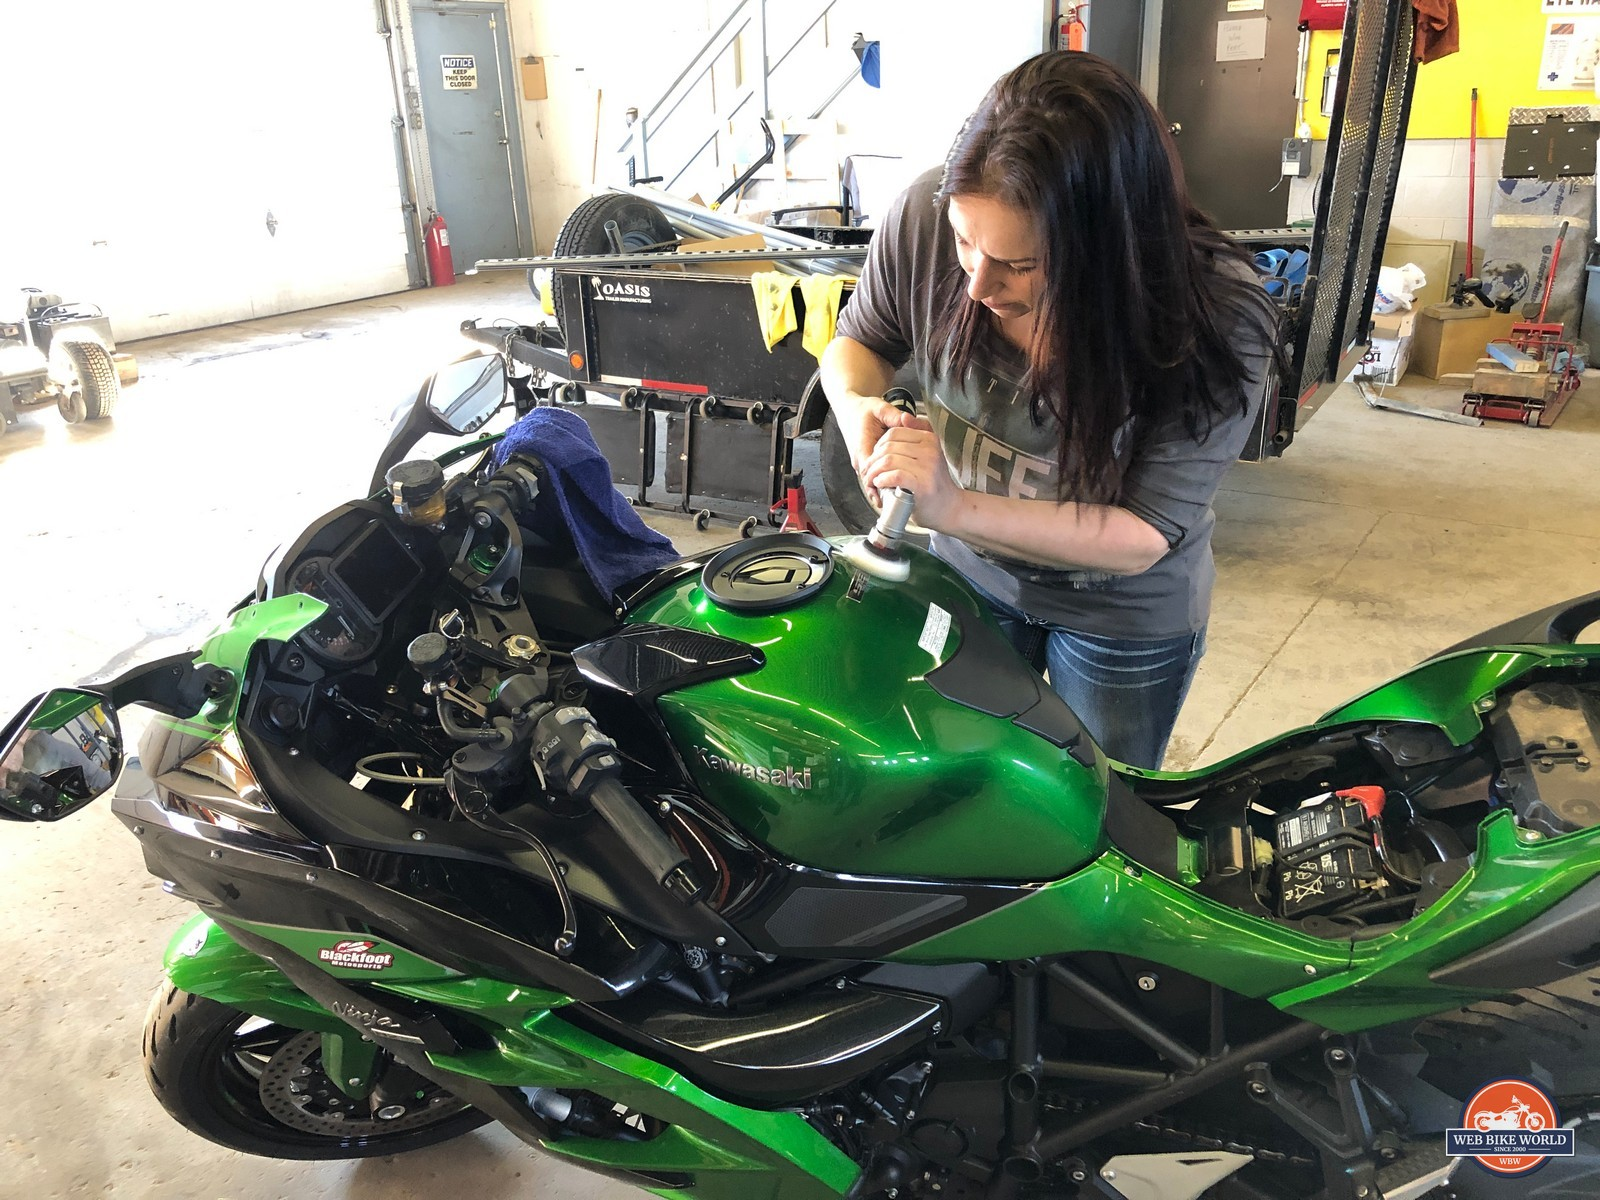 Kate polishing the paint on my Ninja.